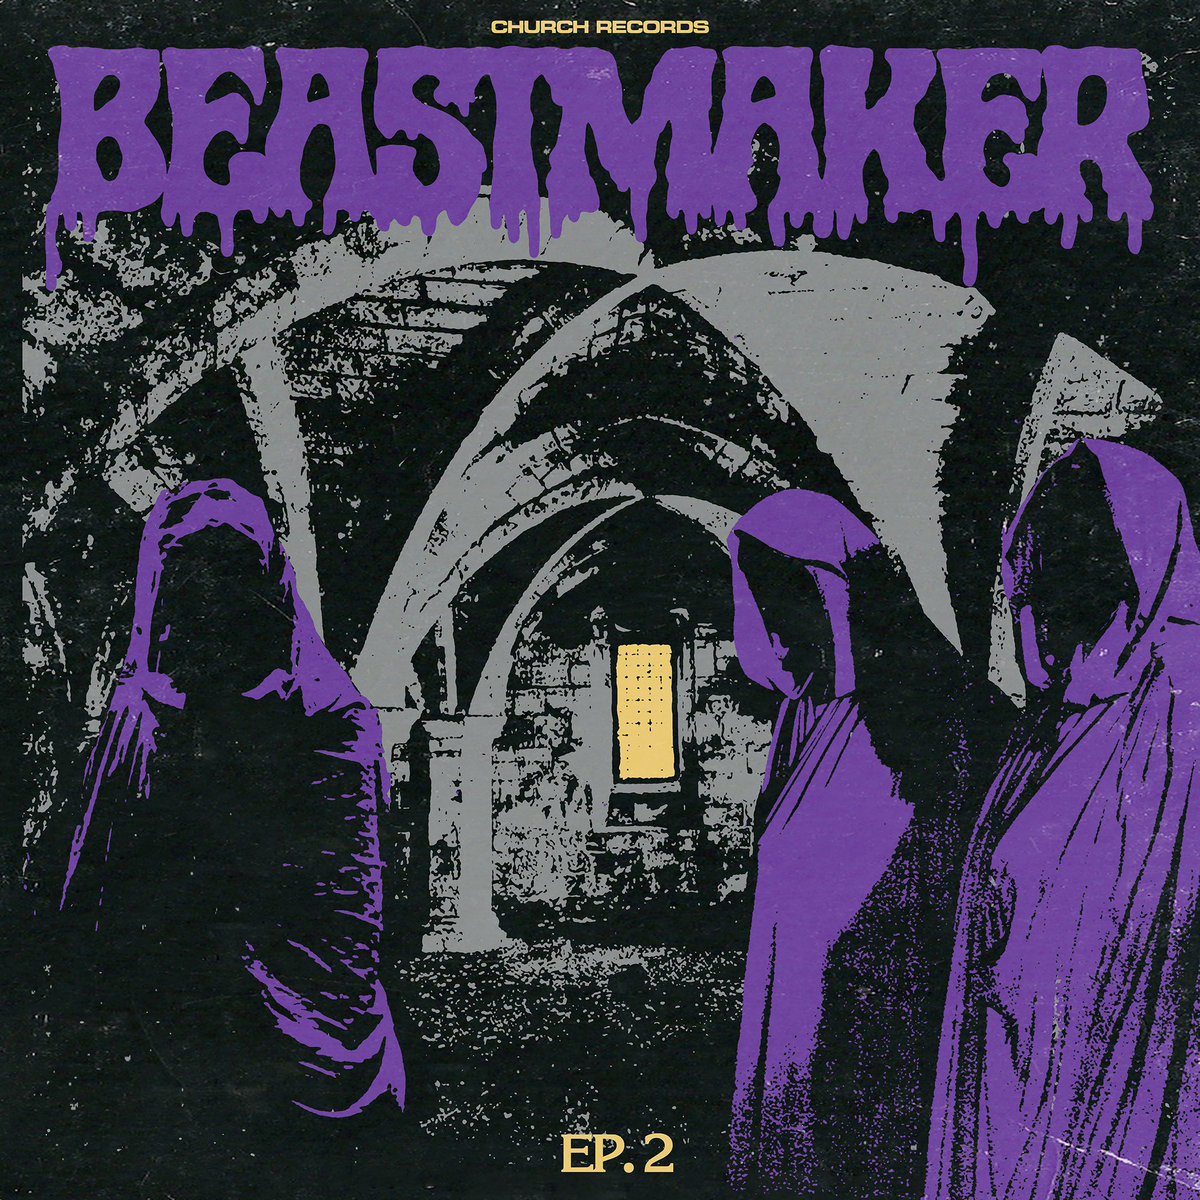 Beastmaker EP-2 Mortal Souls Carnival Sirens Kiss Spread Your Wings